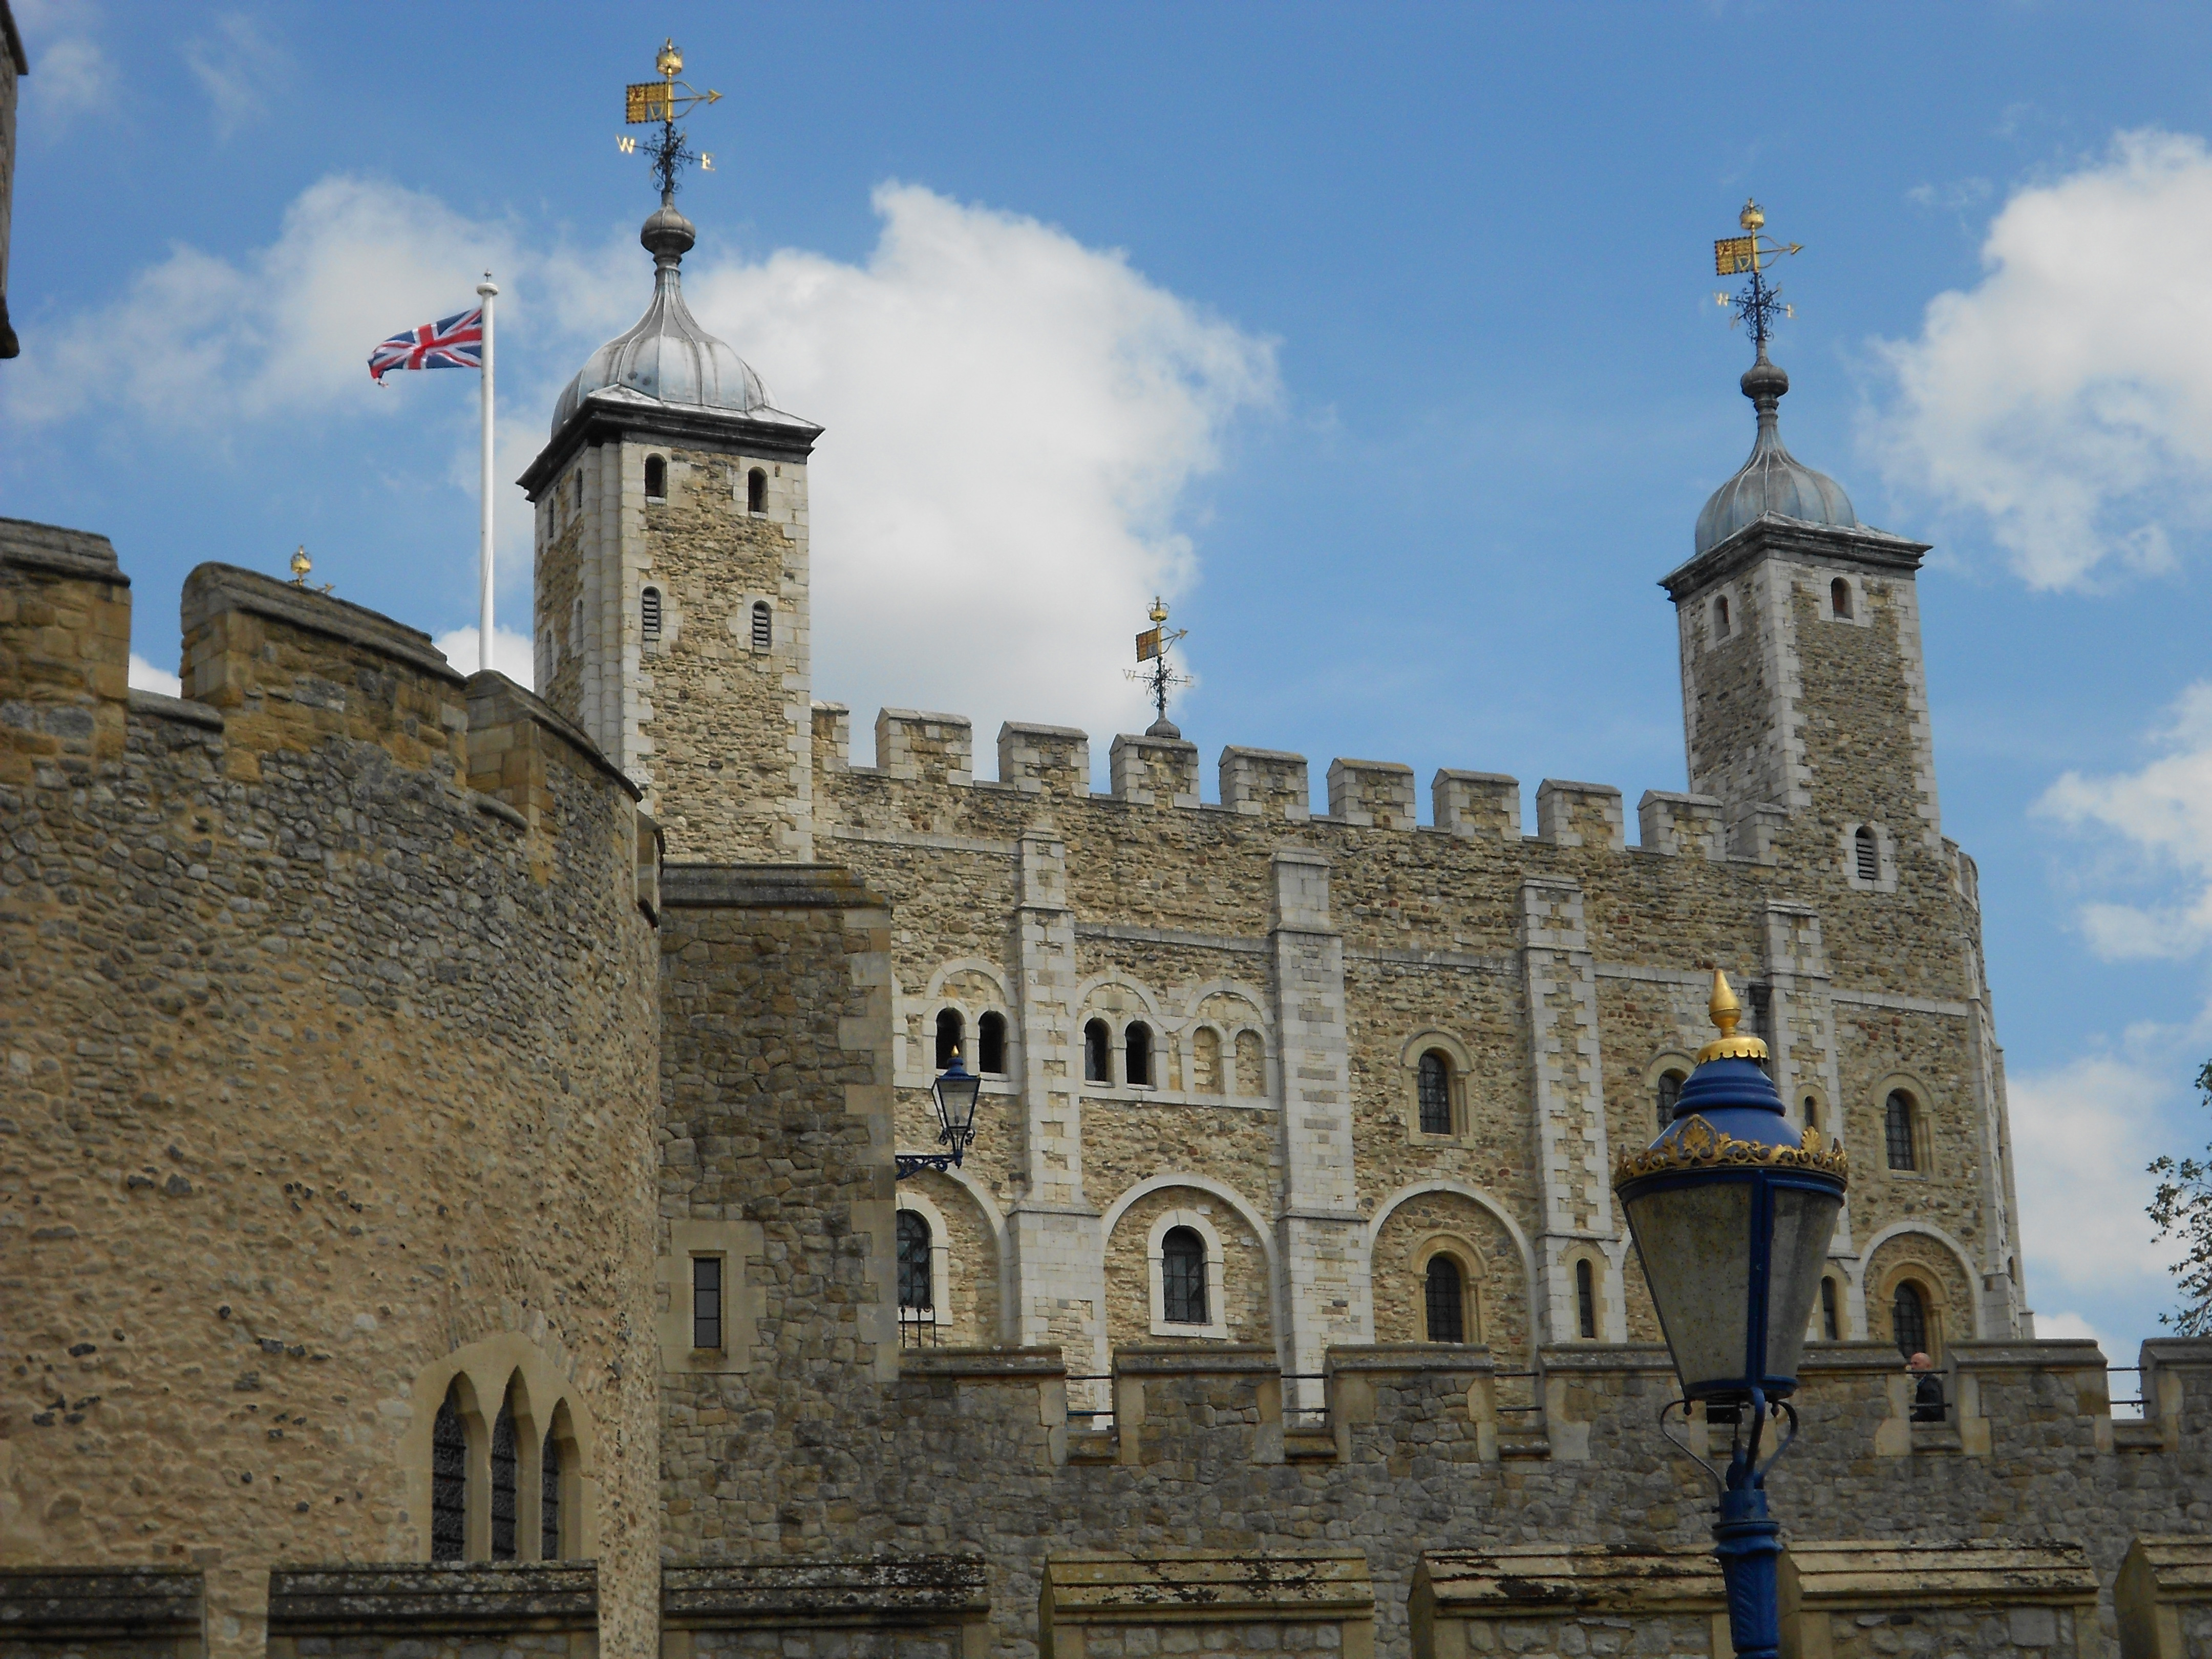 Tower Of London With Wall